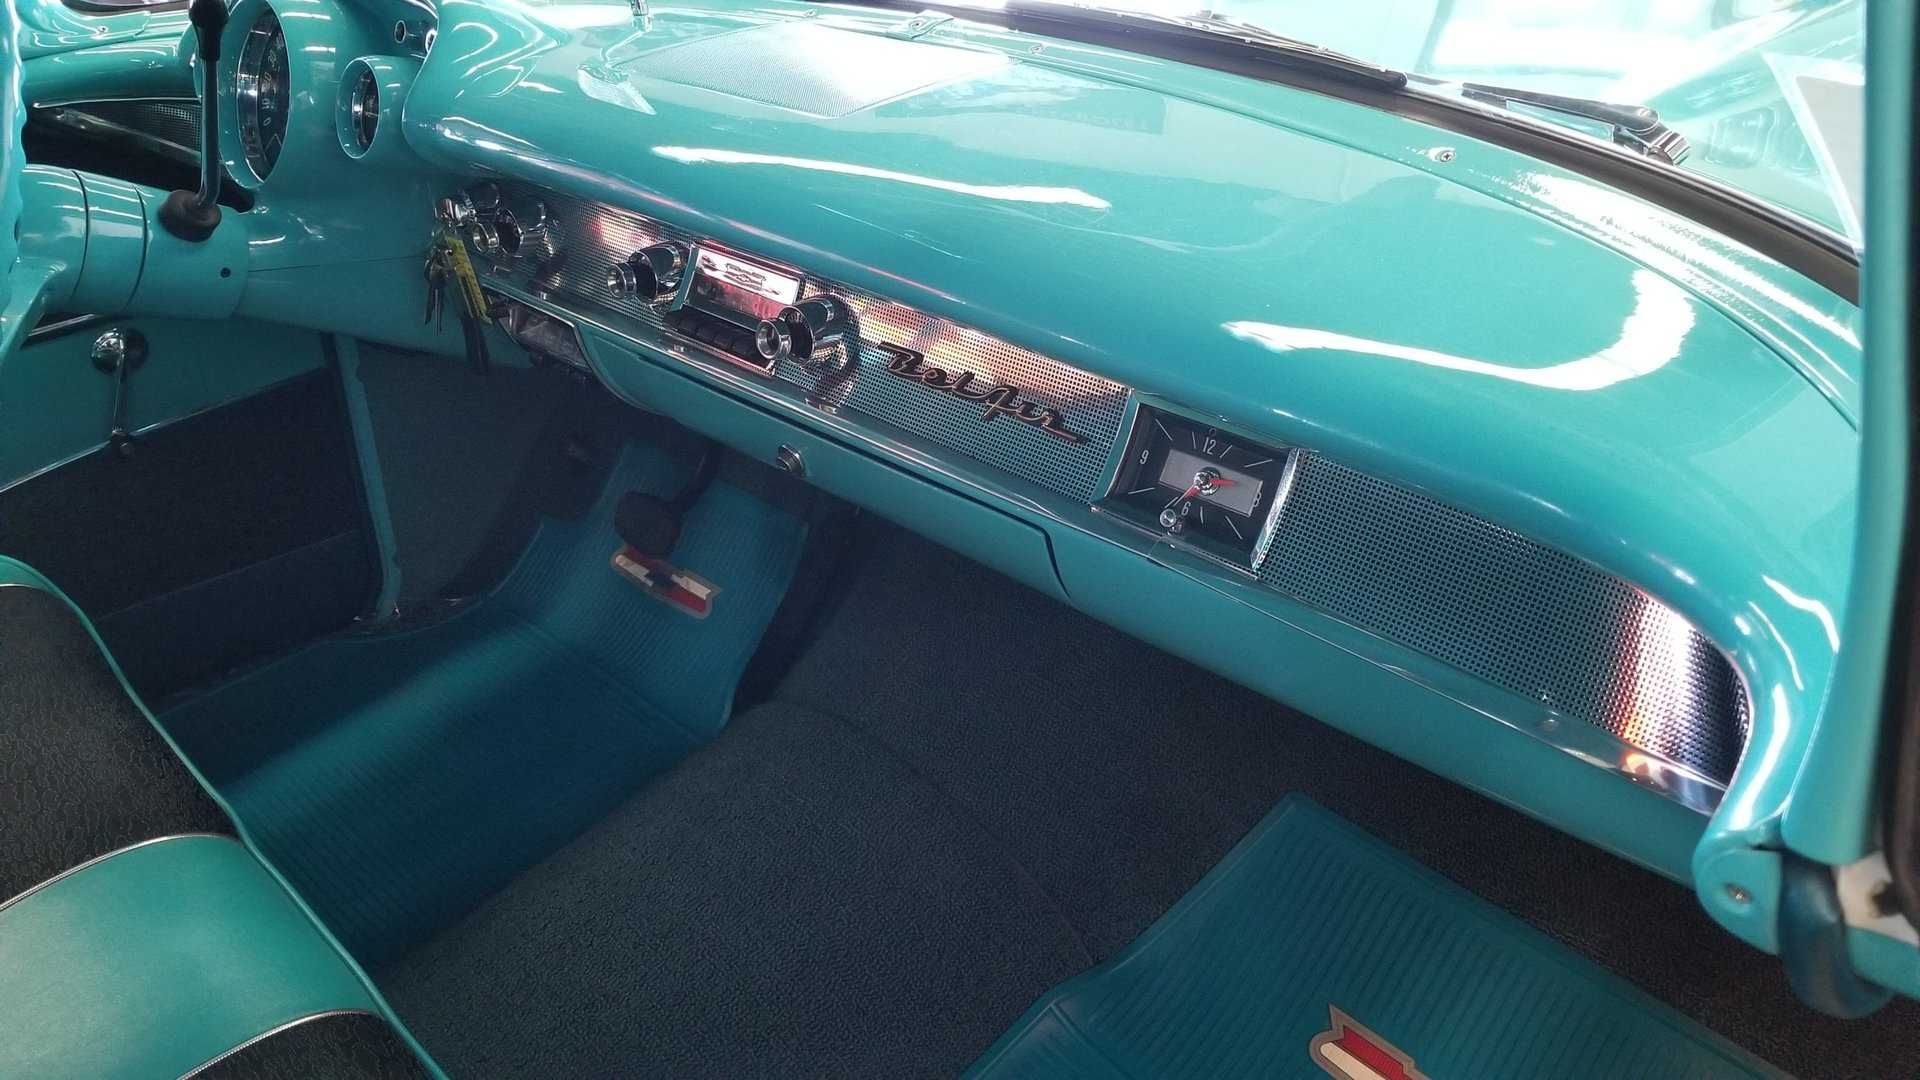 33928a3db904a_hd_1957-chevrolet-bel-air